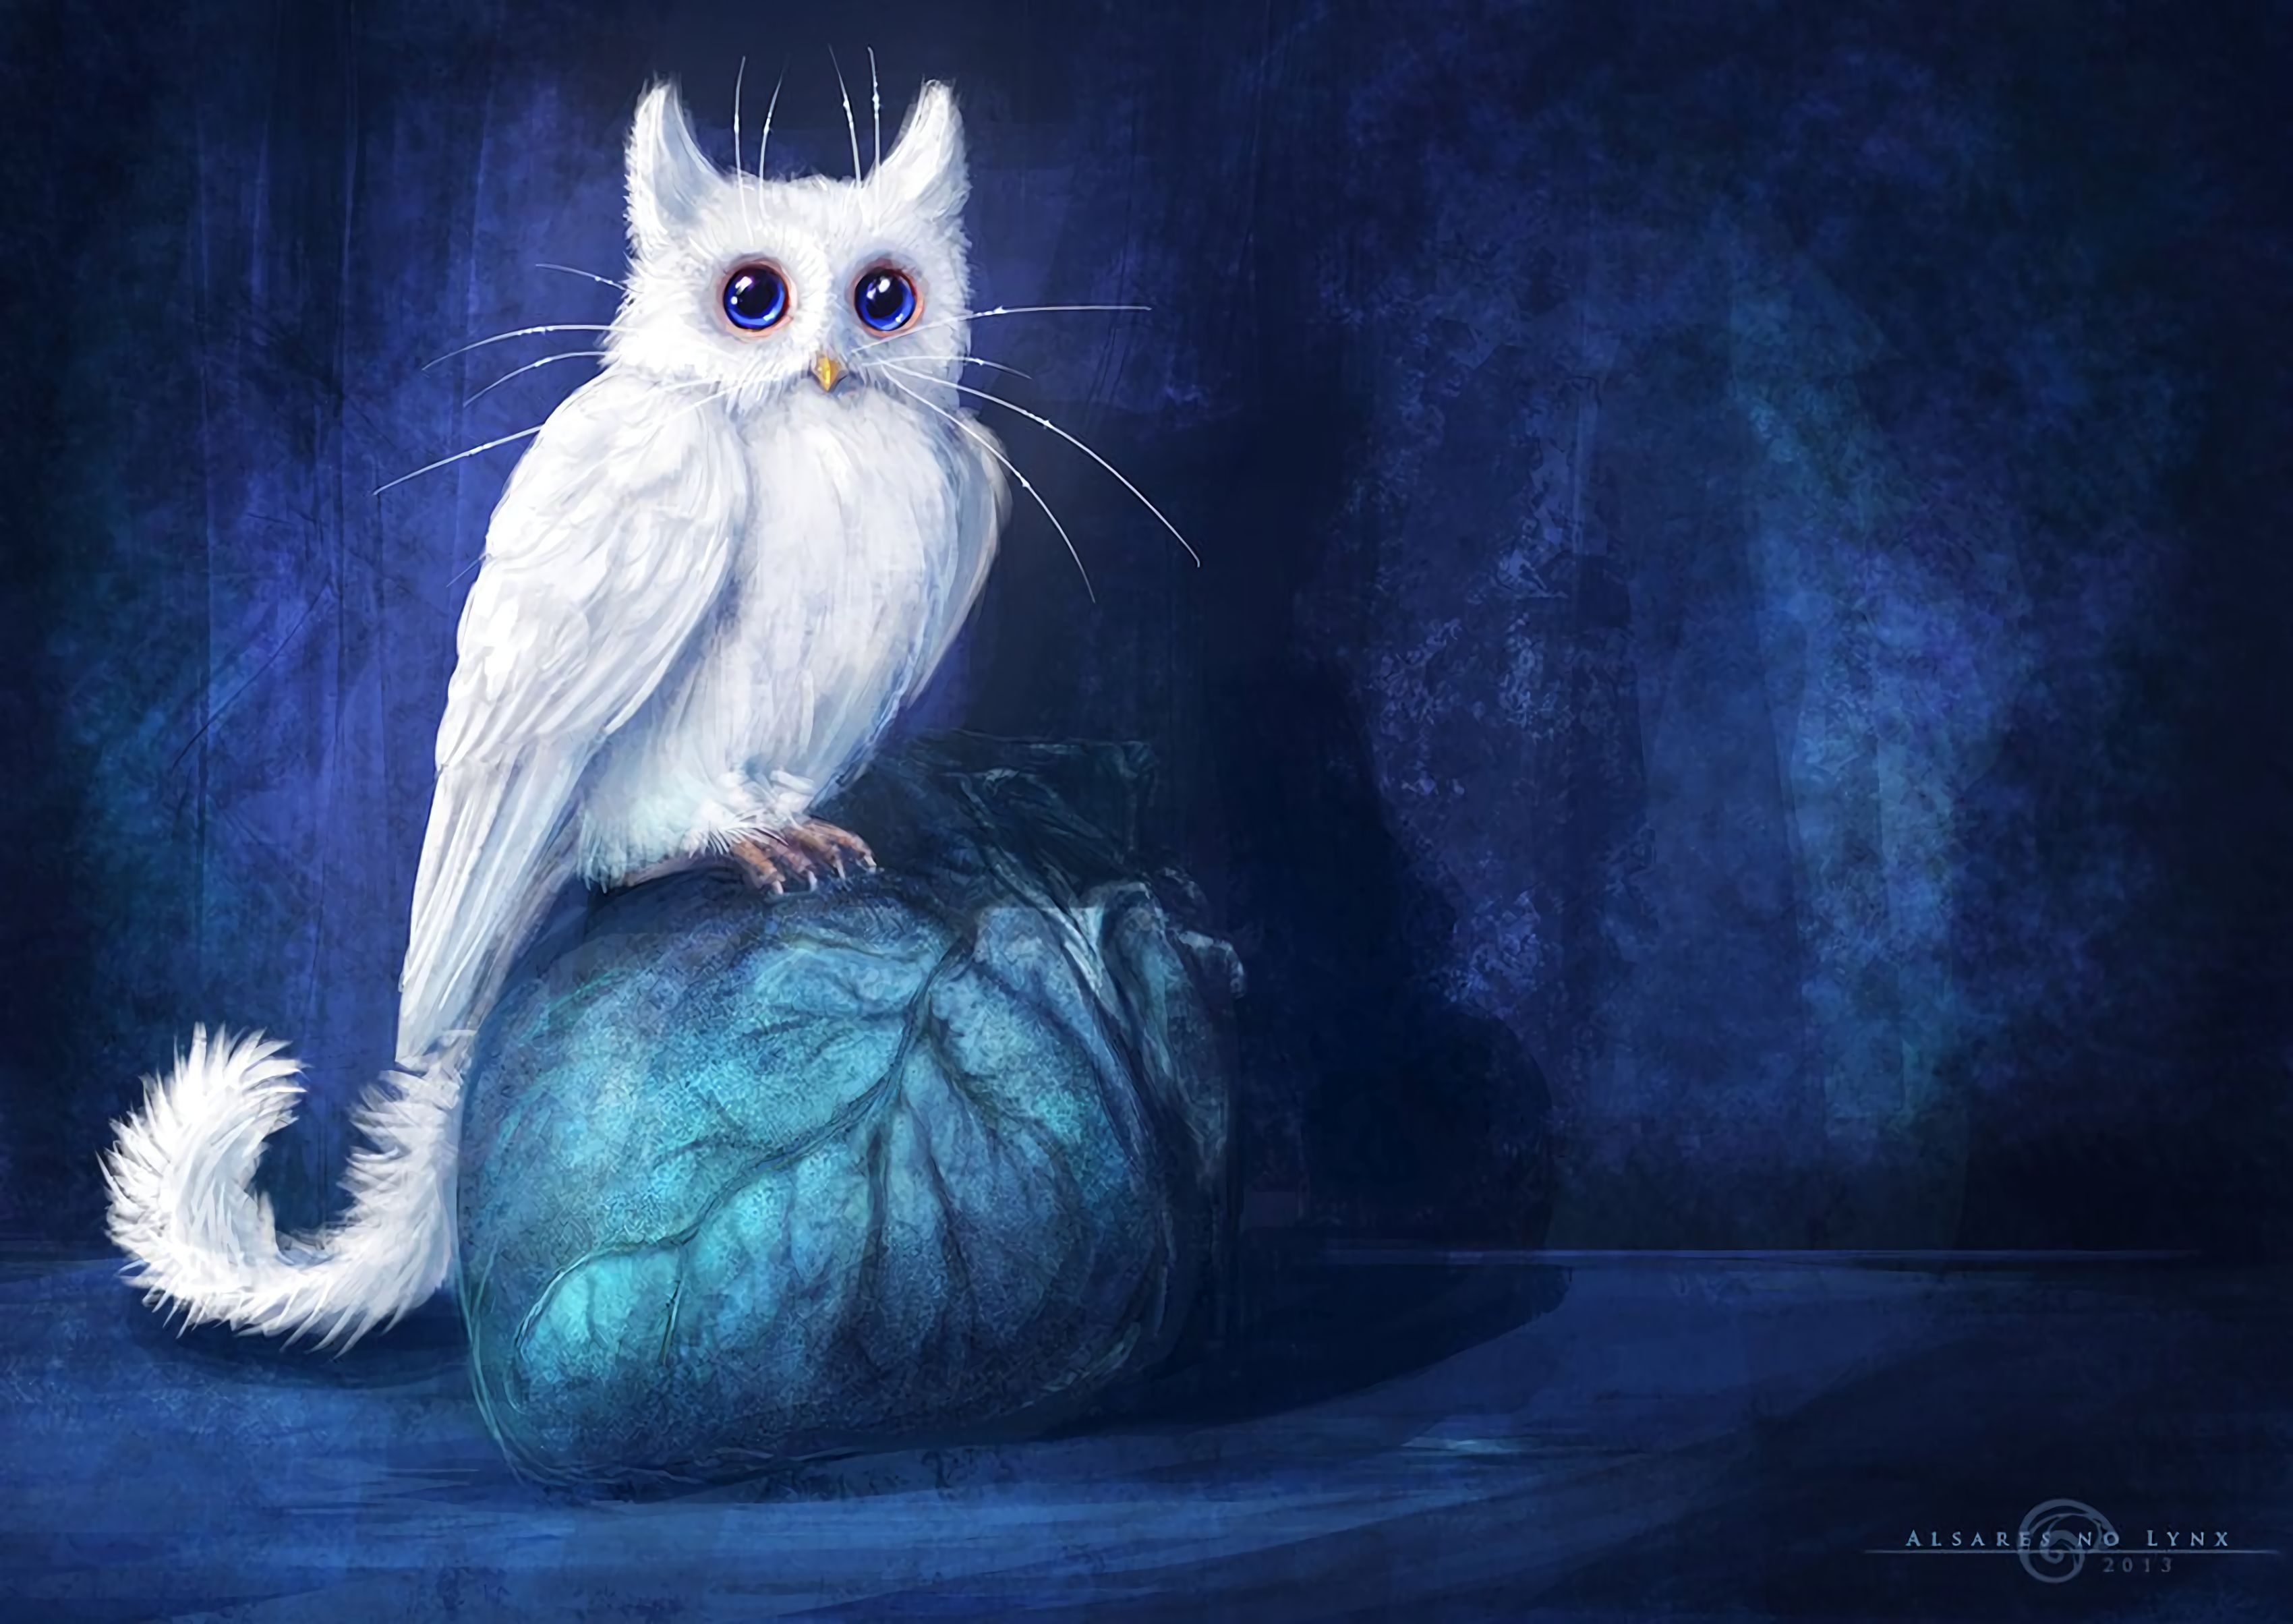 95417 free wallpaper 720x1280 for phone, download images Fantasy, Art, Owl, Cat 720x1280 for mobile